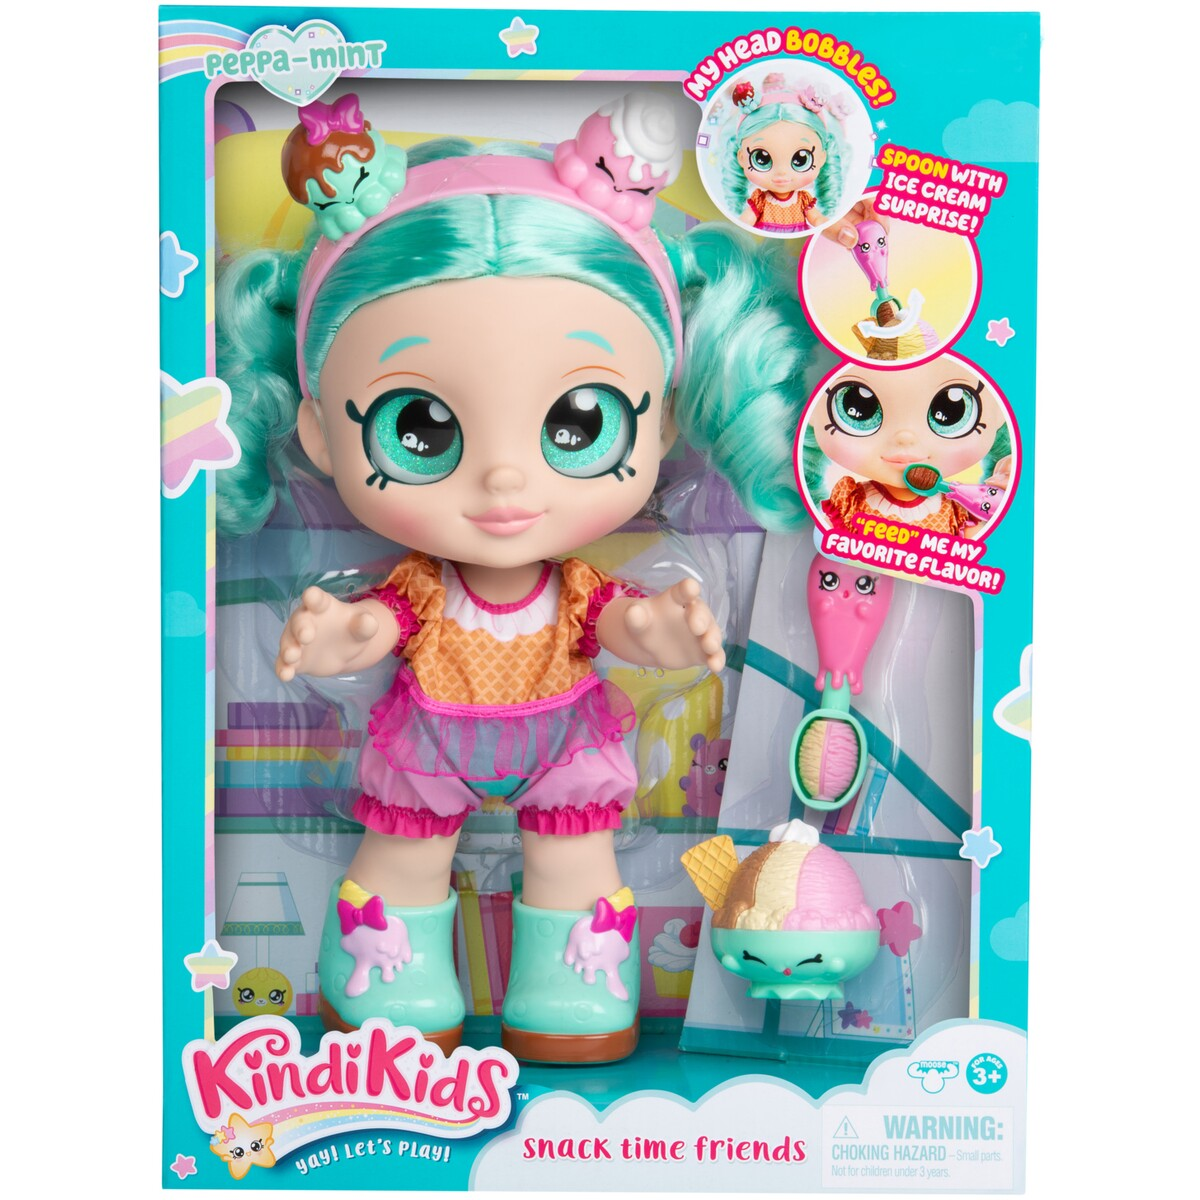 Kindi Kids Snack Time Friends Toddler Peppa-Mint Doll